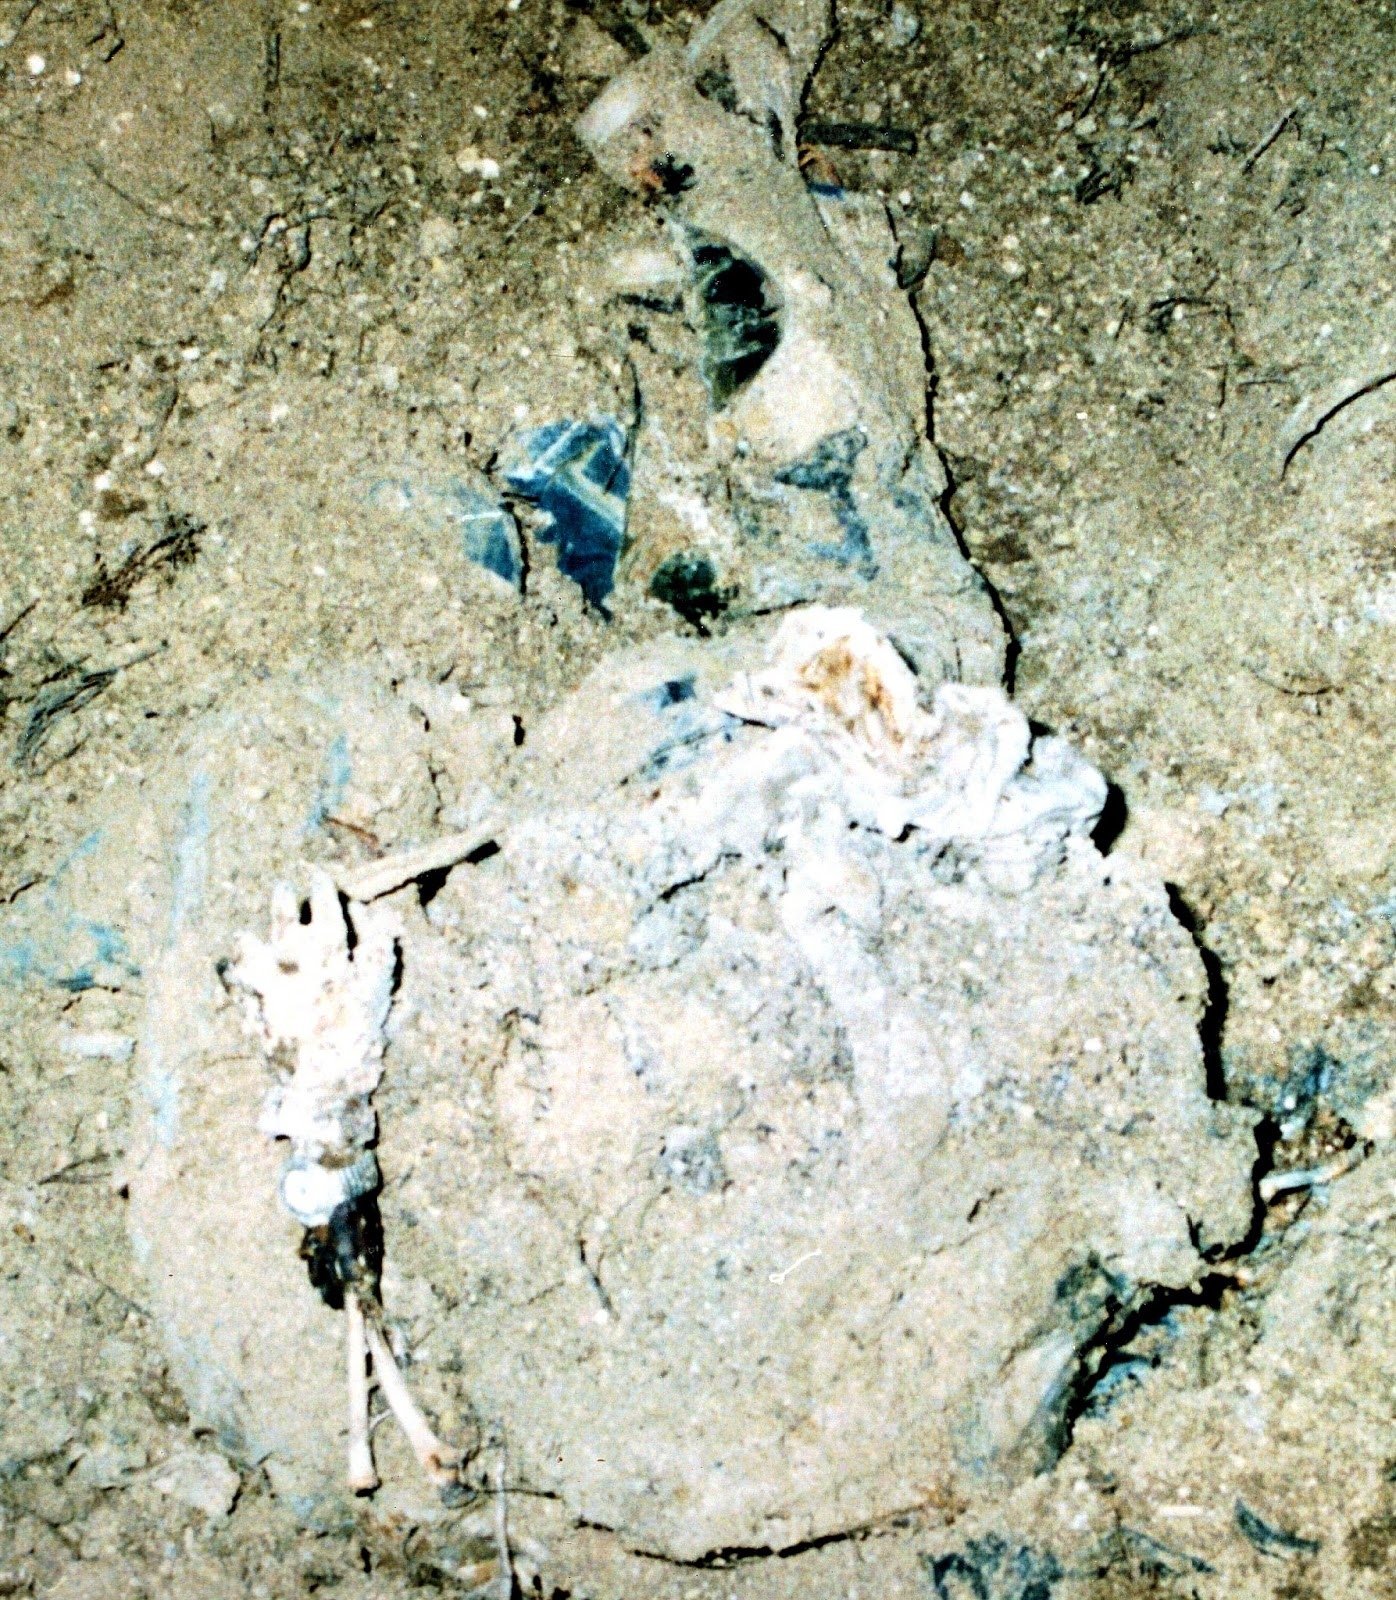 The photo taken of the bodies as they were discovered